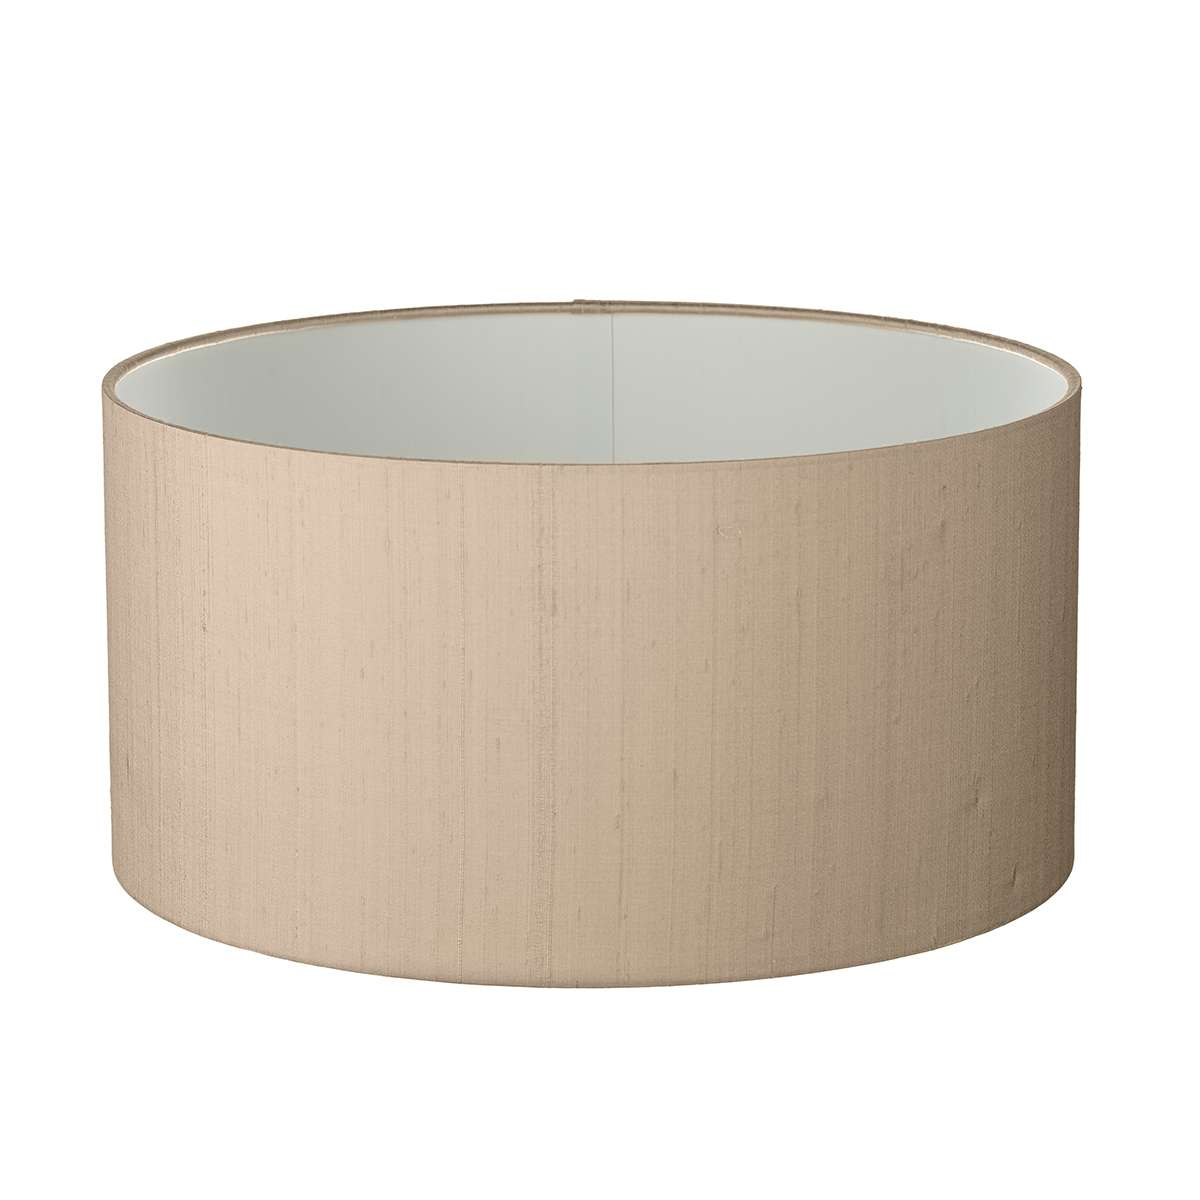 Drum Shallow 50cm 100% Silk Shade with Shade Colour Options